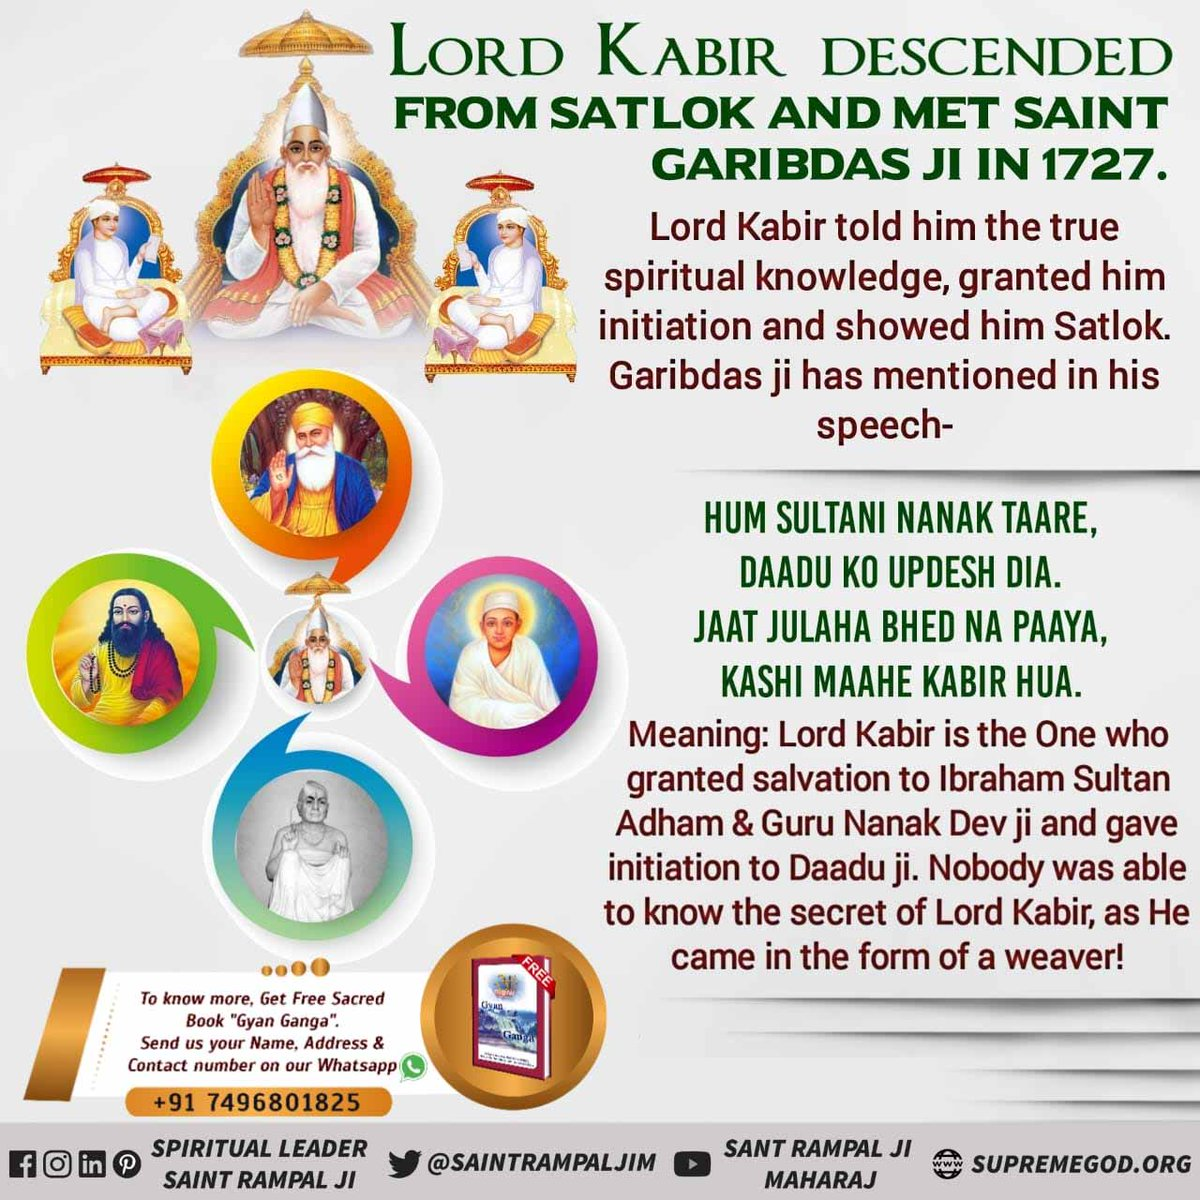 #EyeWitnessOfGod  Yajurved chapter no. 29 shlok no. 25 The kind Supreme God who is the real friend of a living being and who in the form of a messenger brings and imparts his sound knowledge is himself Kabir. @SaintRampalJiM   Lord Kabir ji